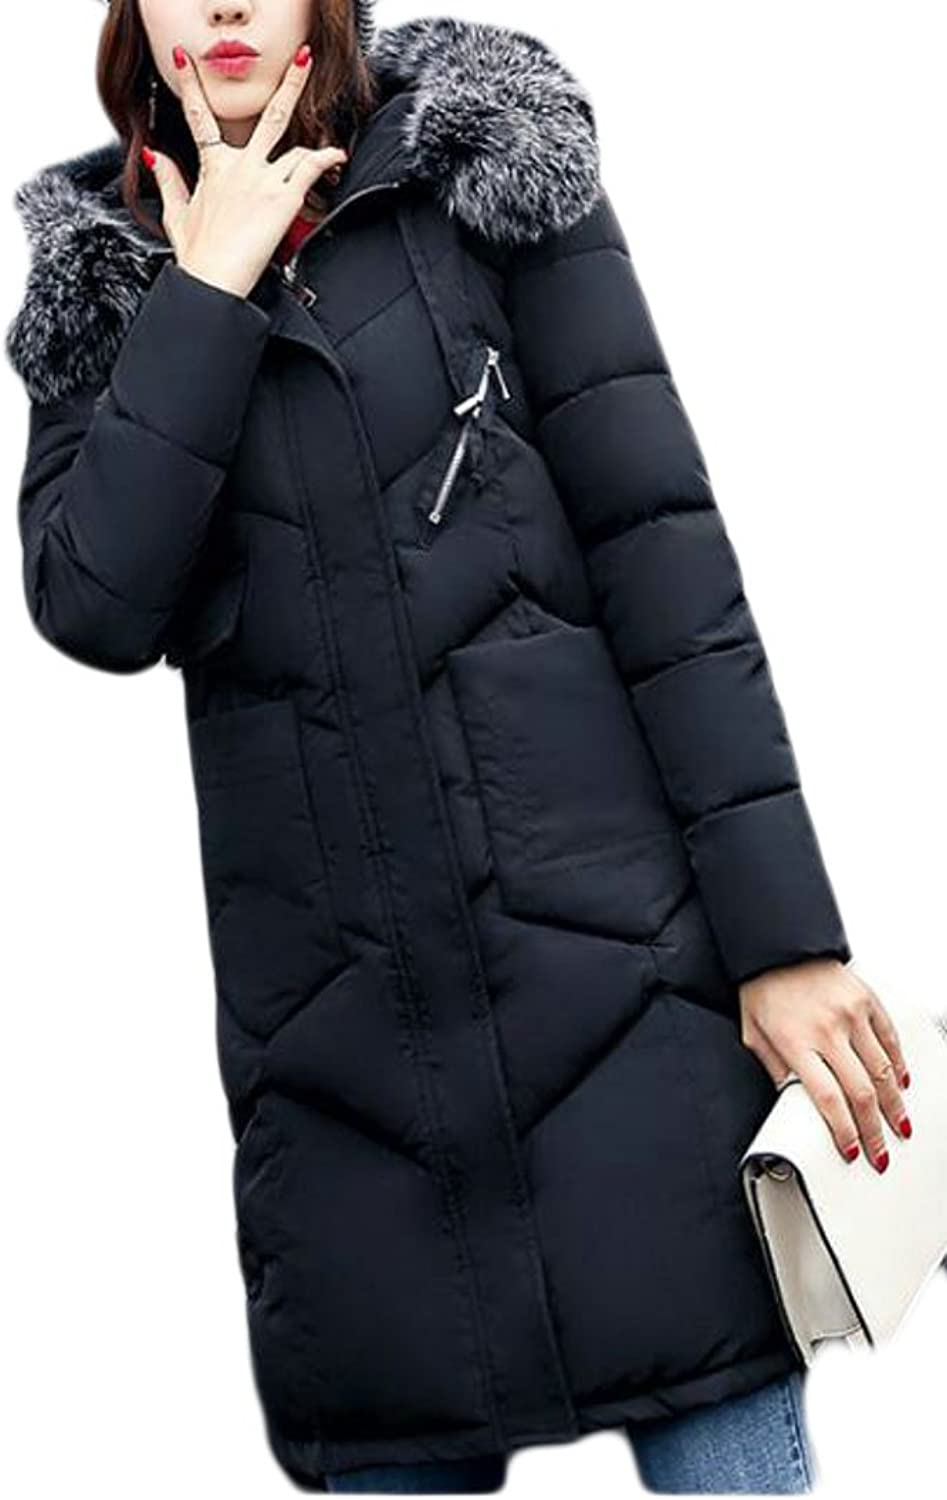 KLJRWomen Plus Size Padded Full Length Coat With Fur Trim Removable Hooded